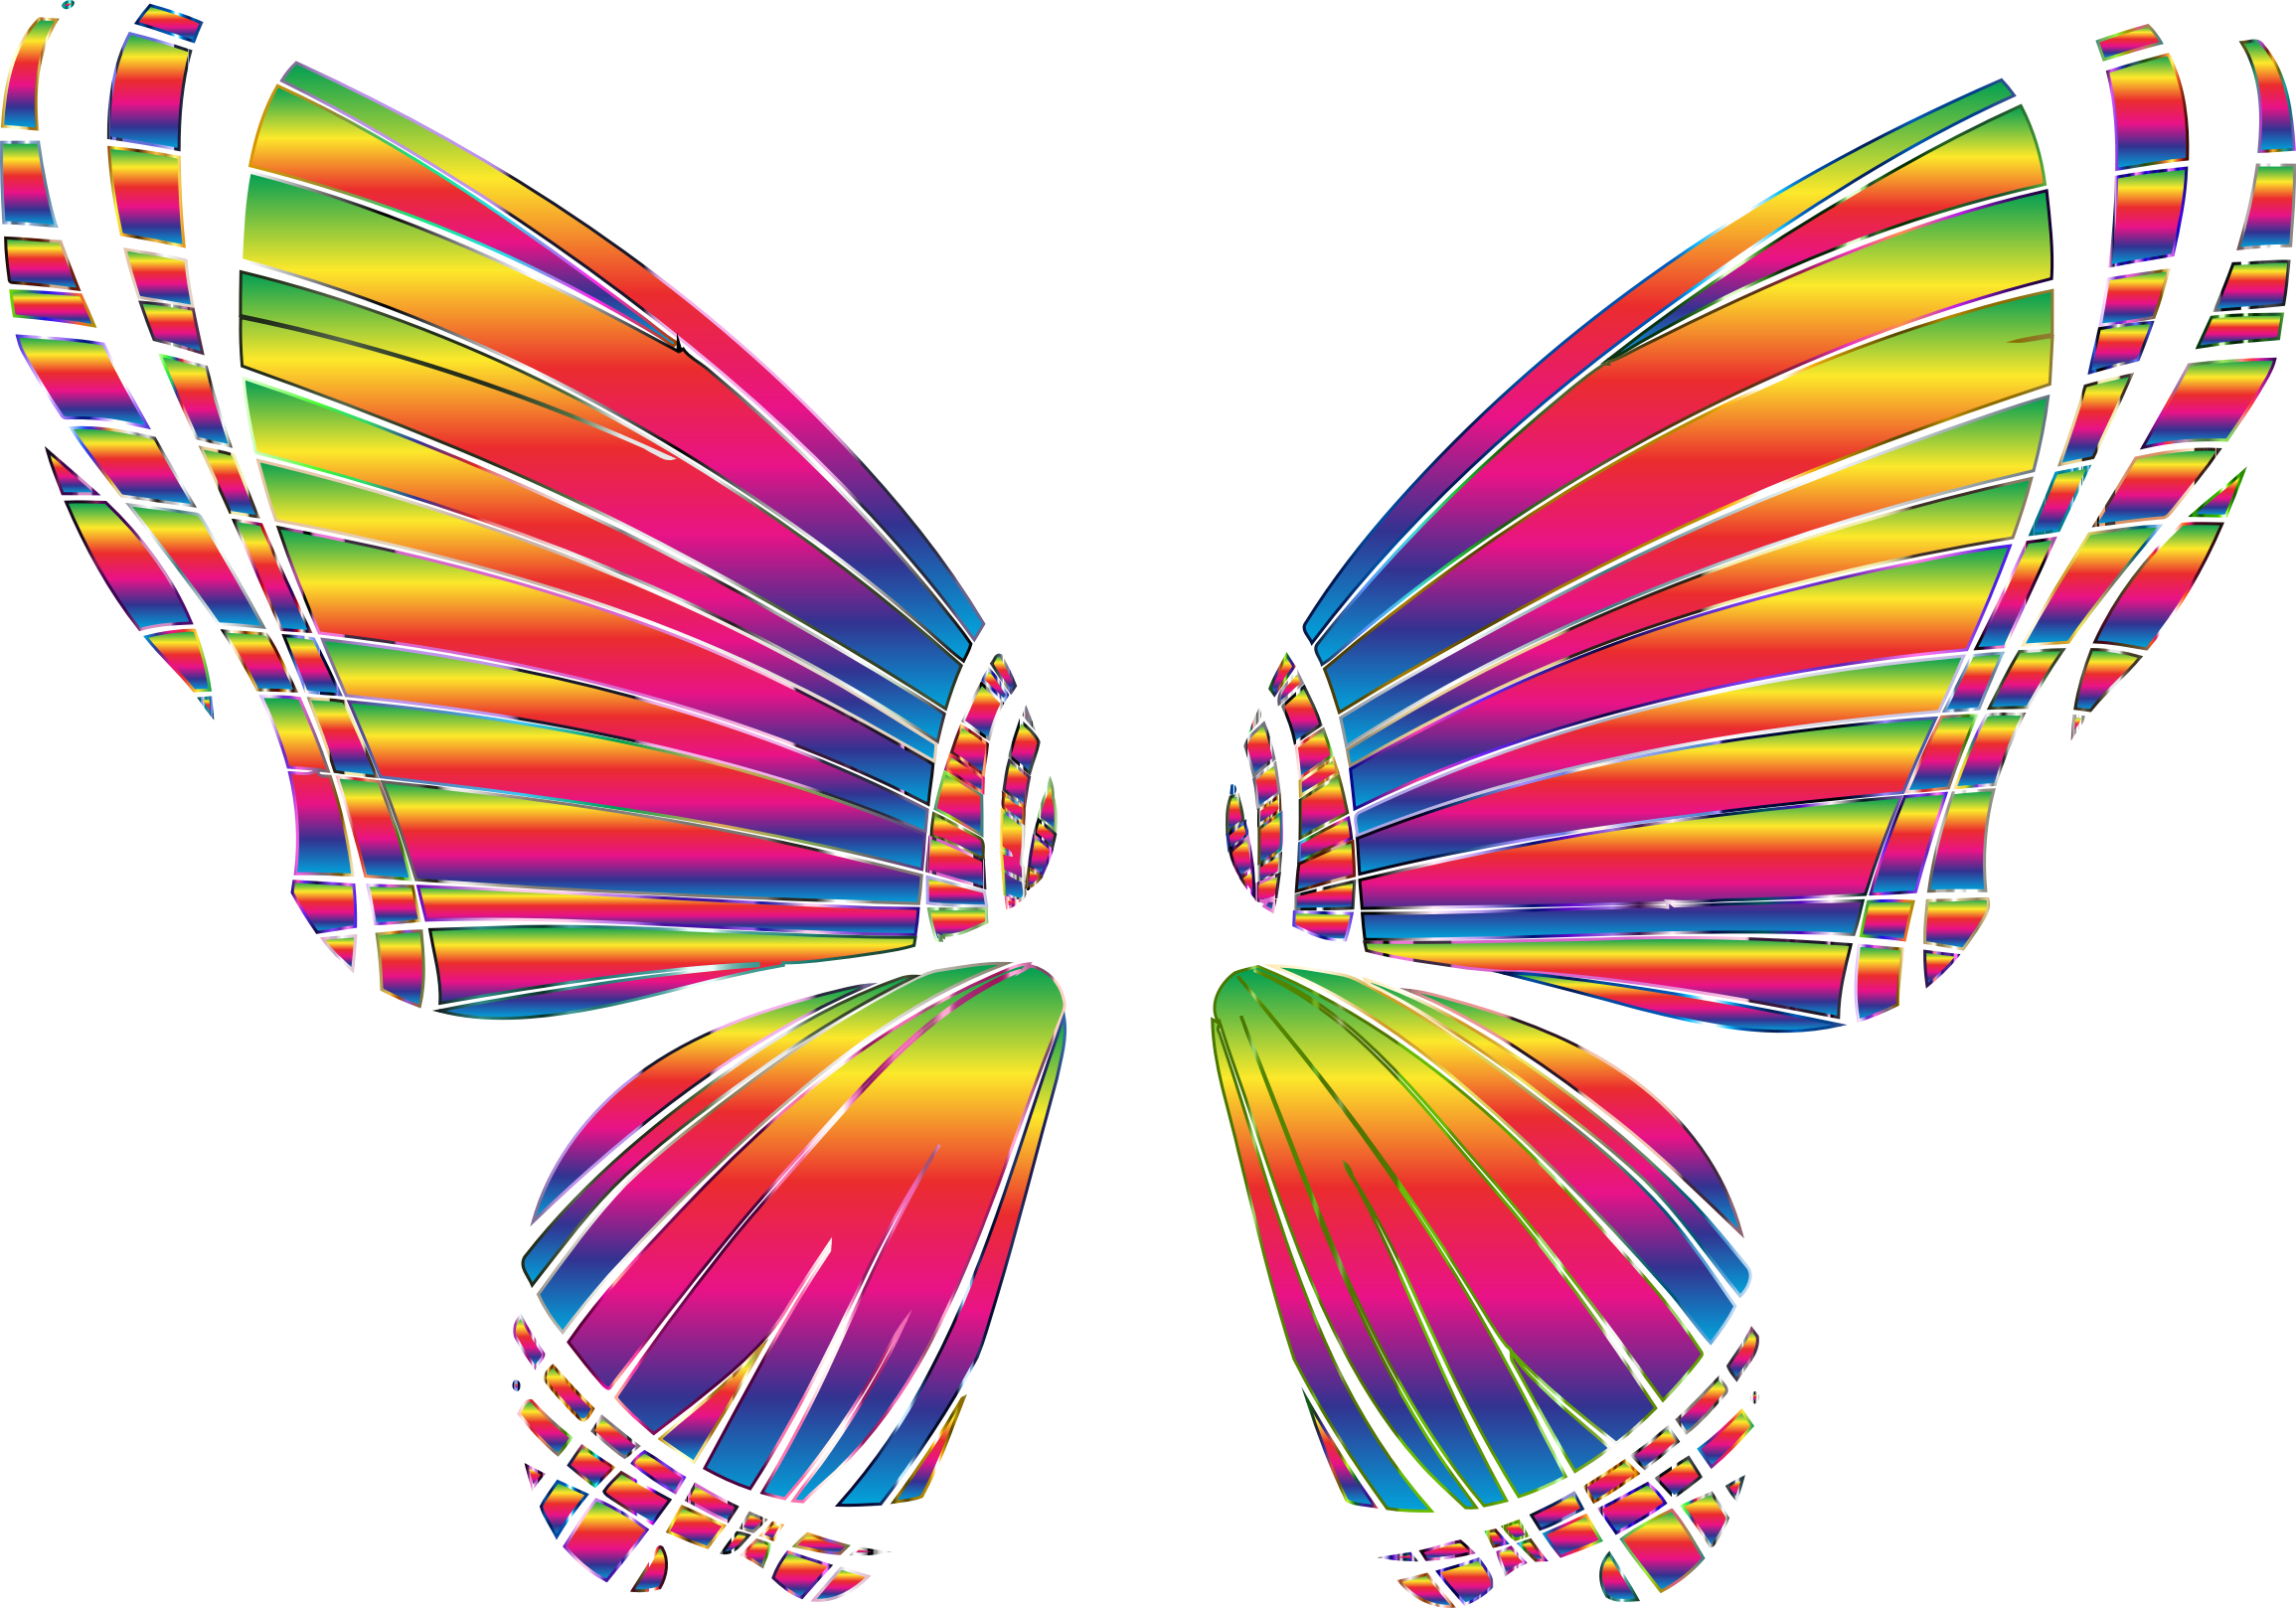 Rgb Butterfly Silhouette 10 8 No Background By Gdj Rgb Butterfly Silhouette 10 8 No Background On Openclipart Background Butterfly Transparent Background